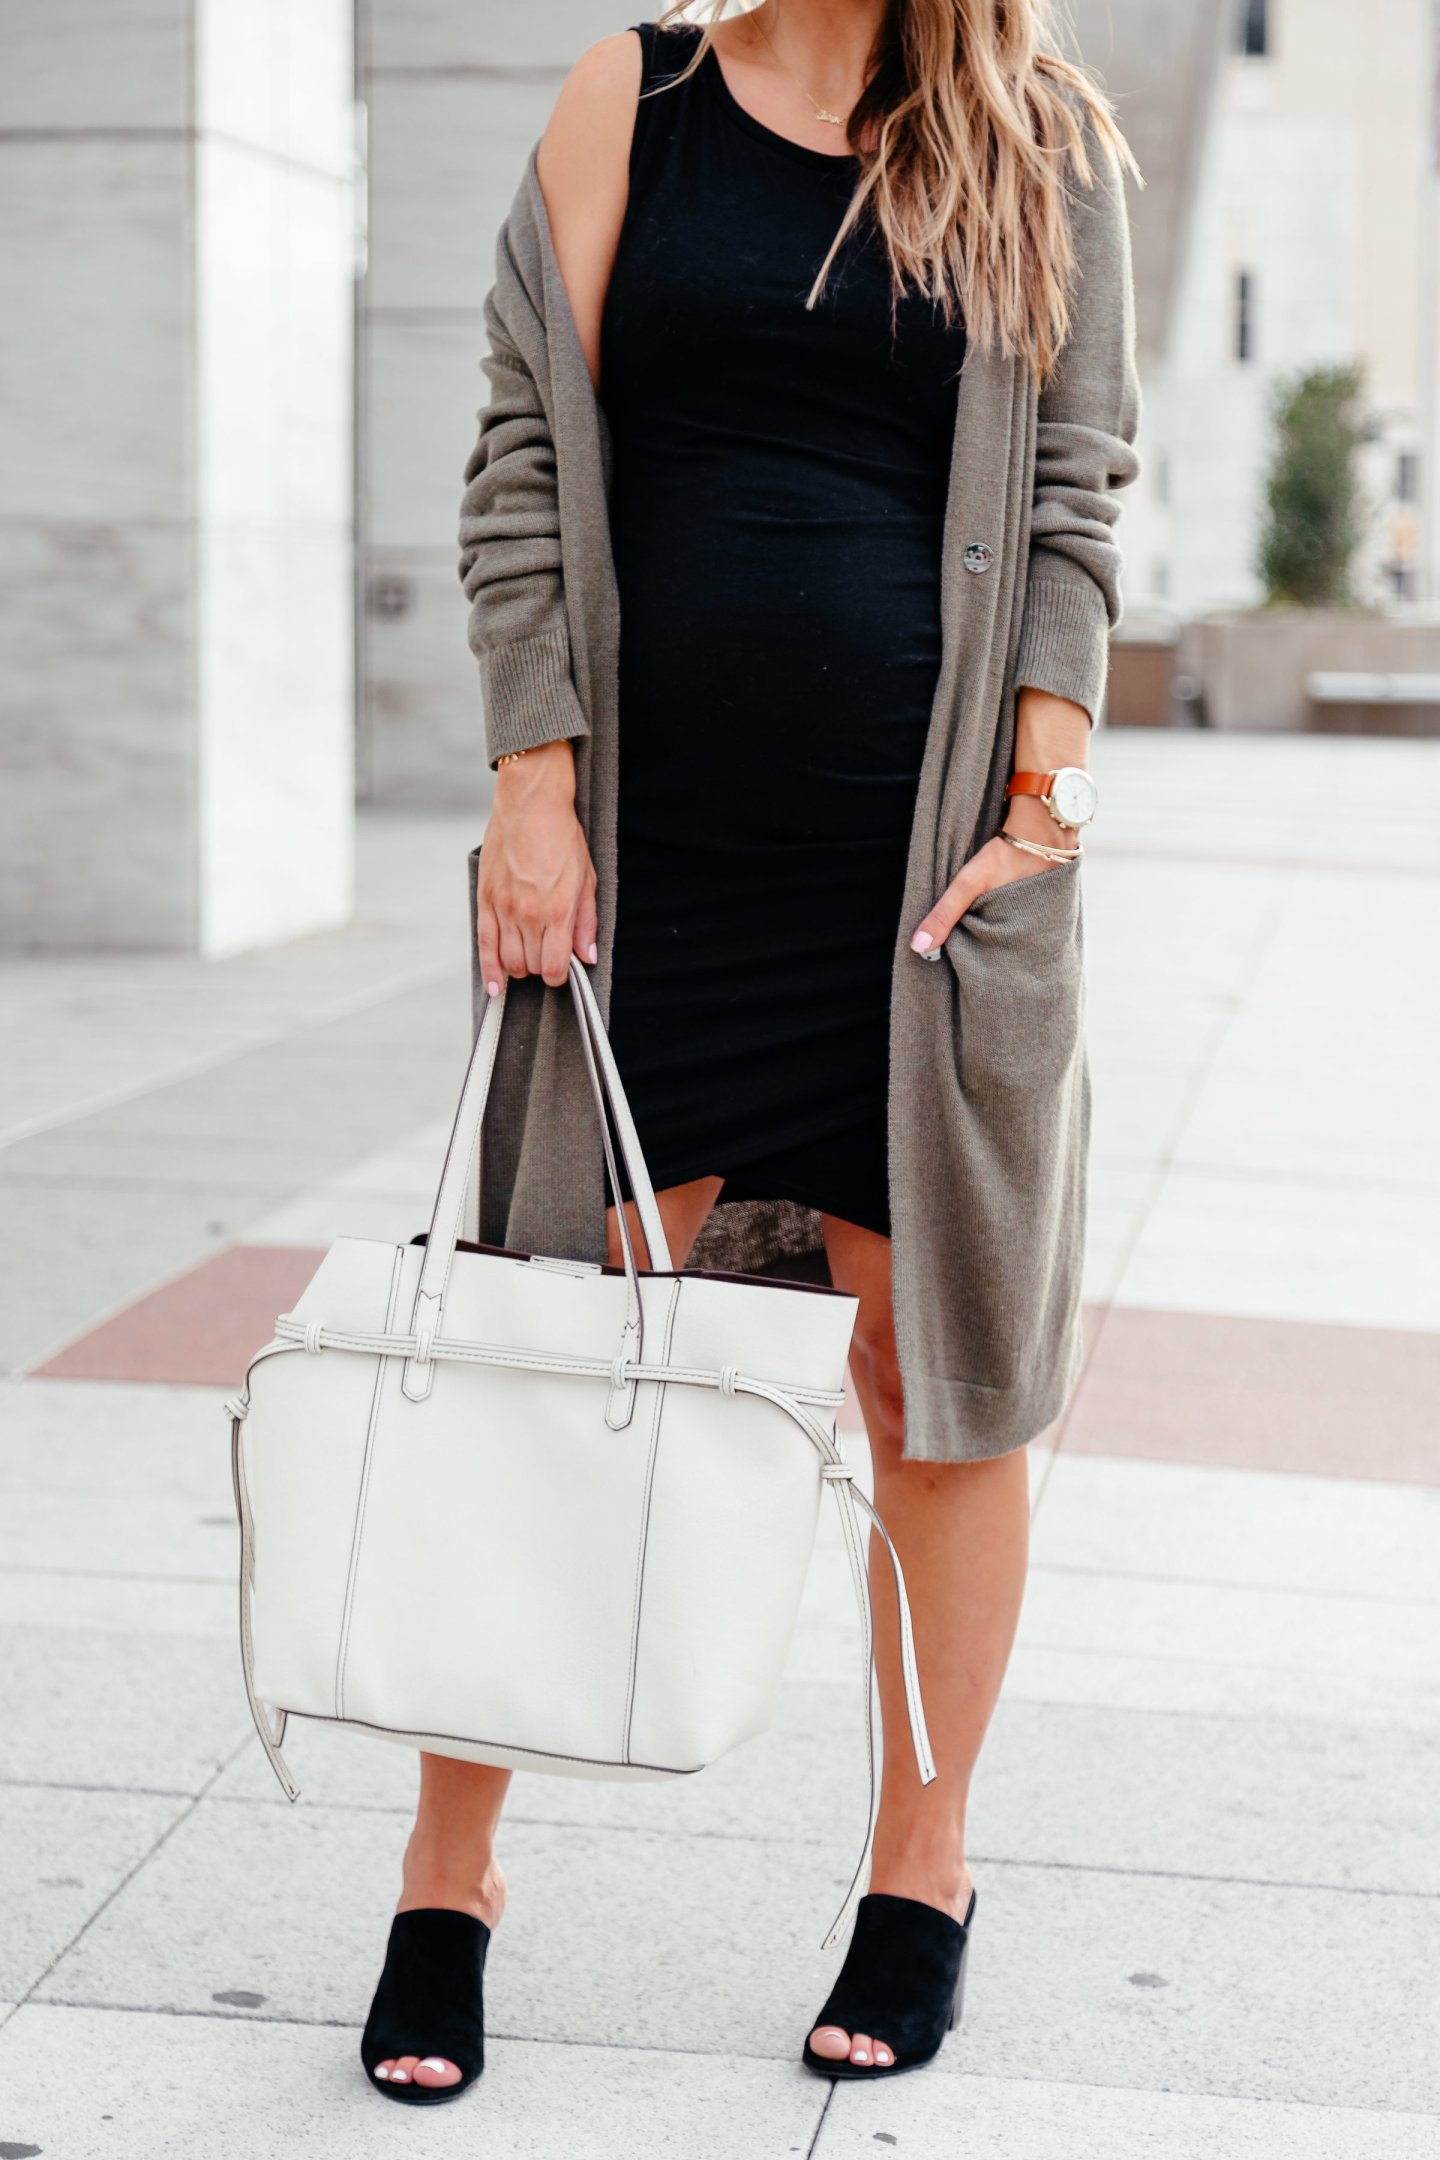 black bodycon dress with black mules and cardigan